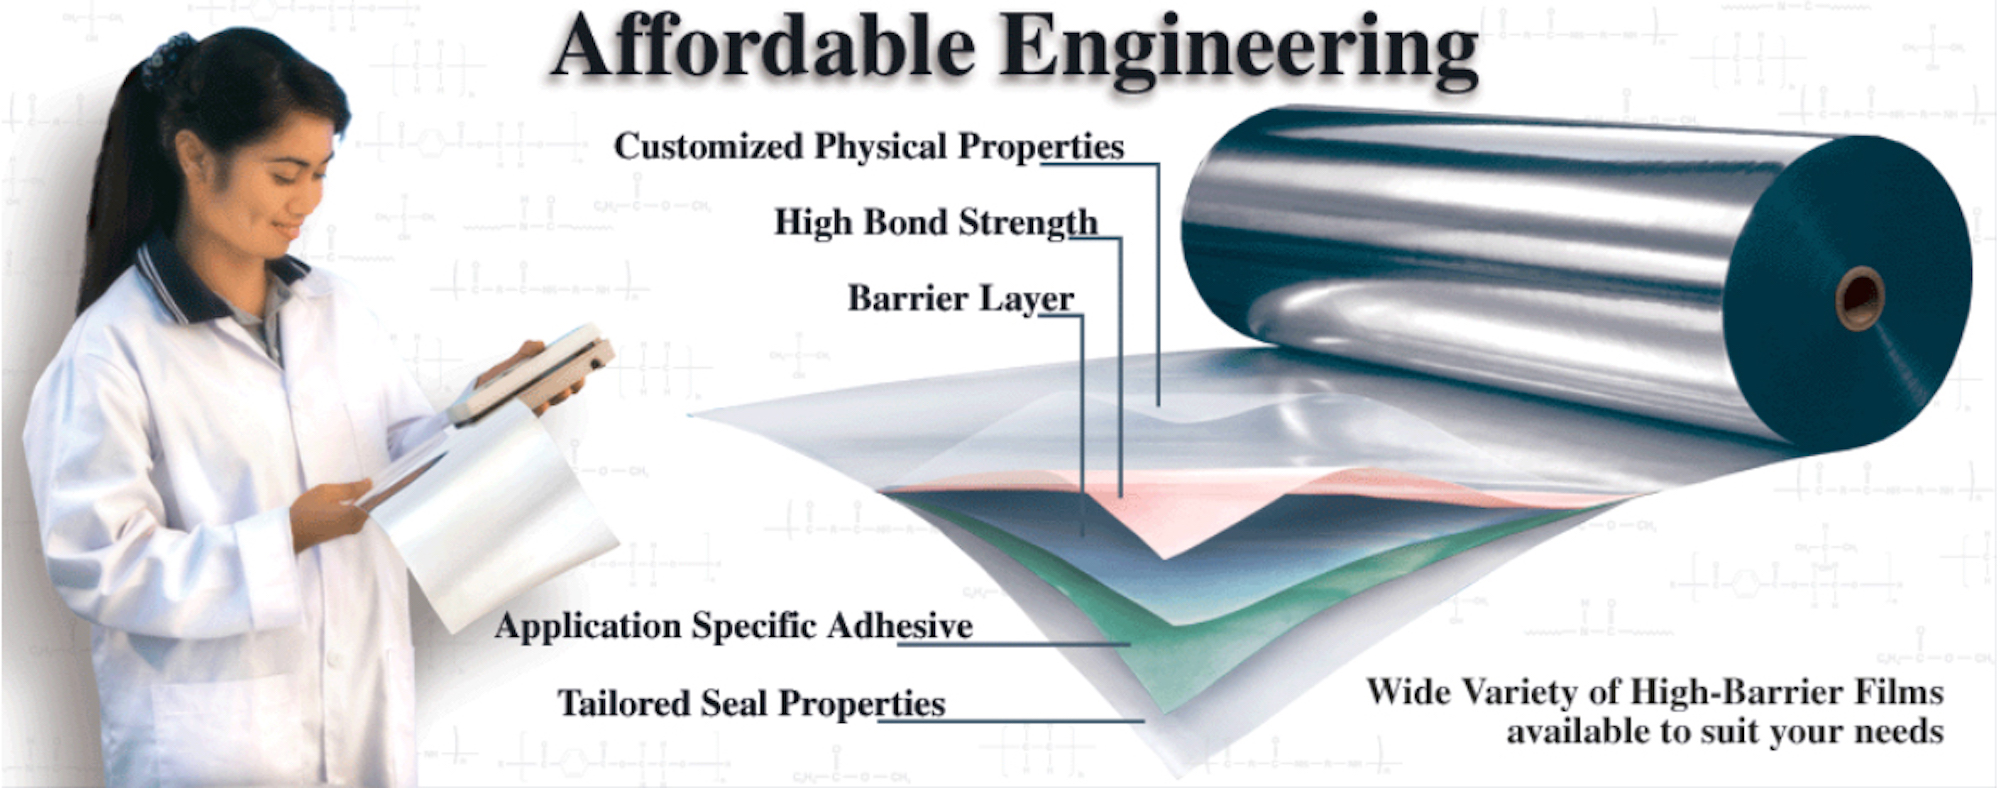 Affordable Engineering Graphic